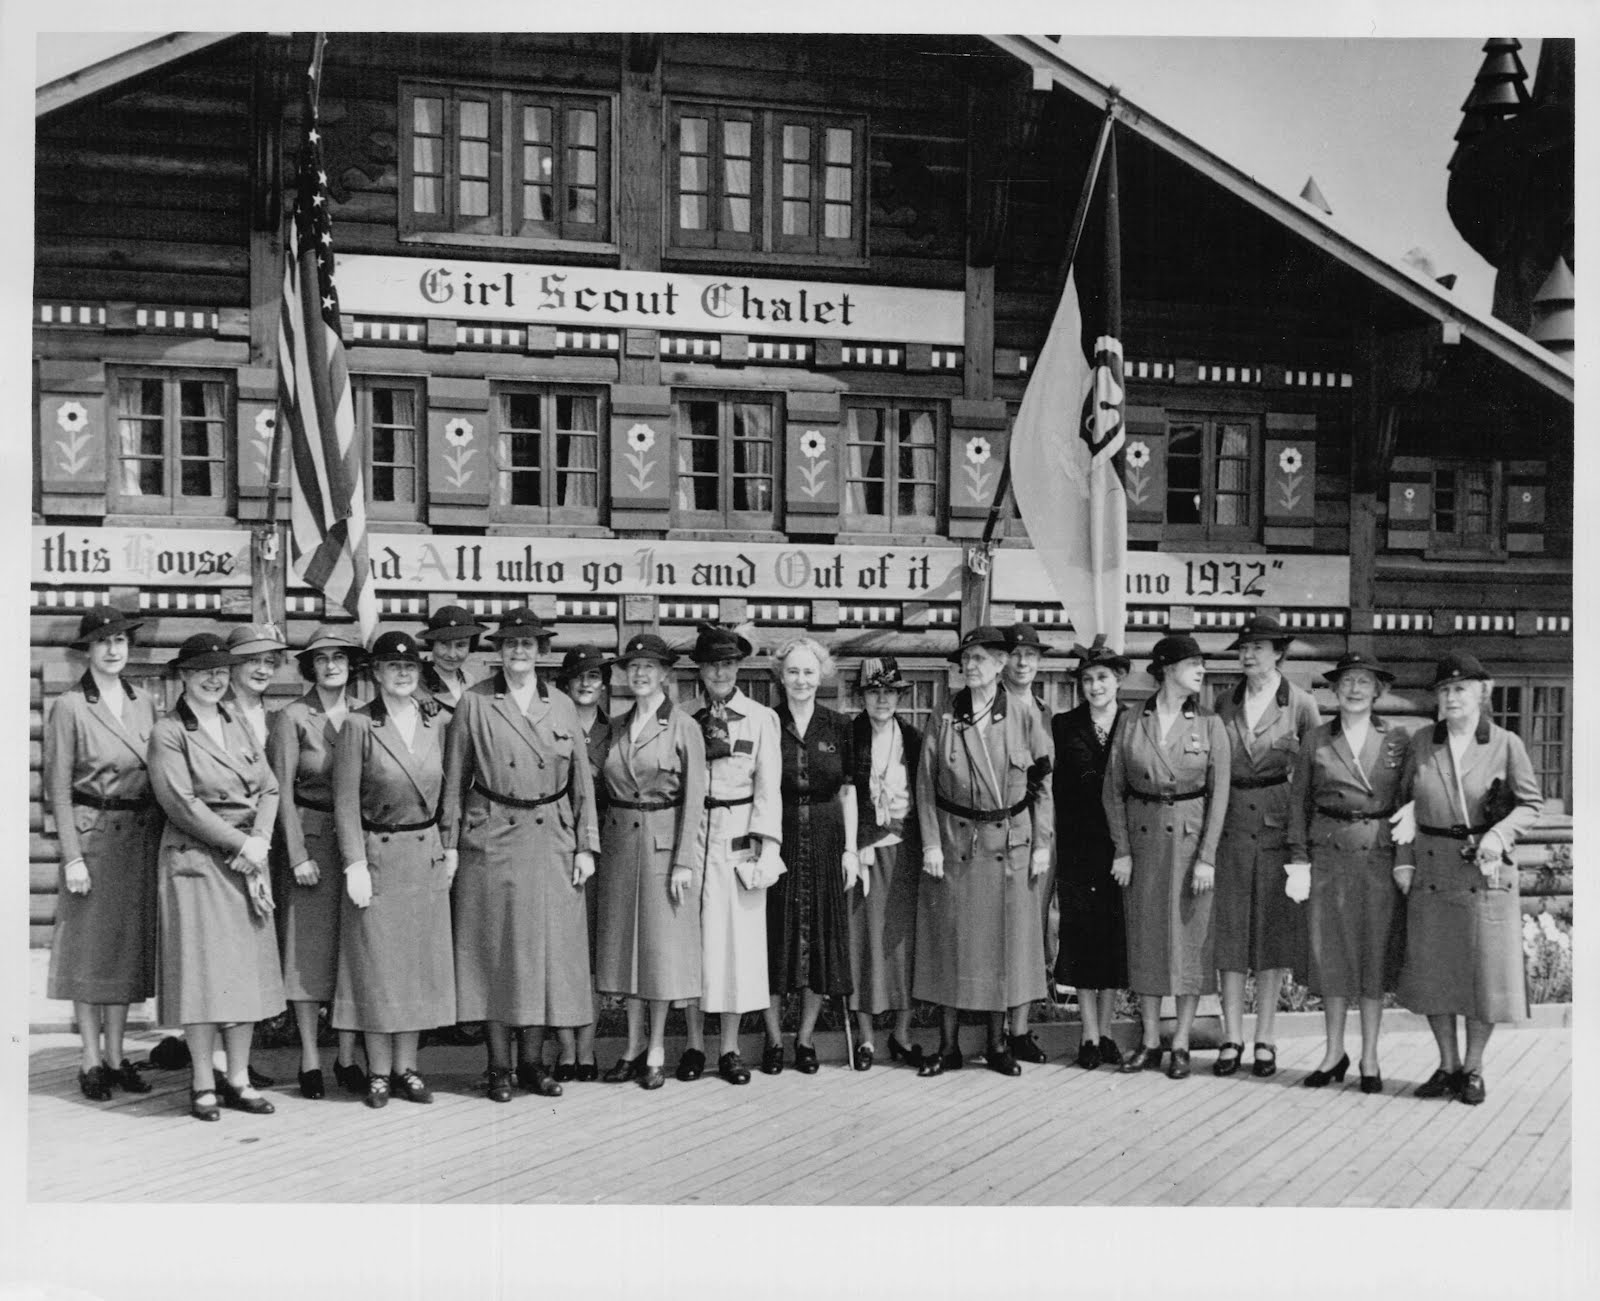 100th Anniversary of Girl Scouts of the USA | The New York History ...